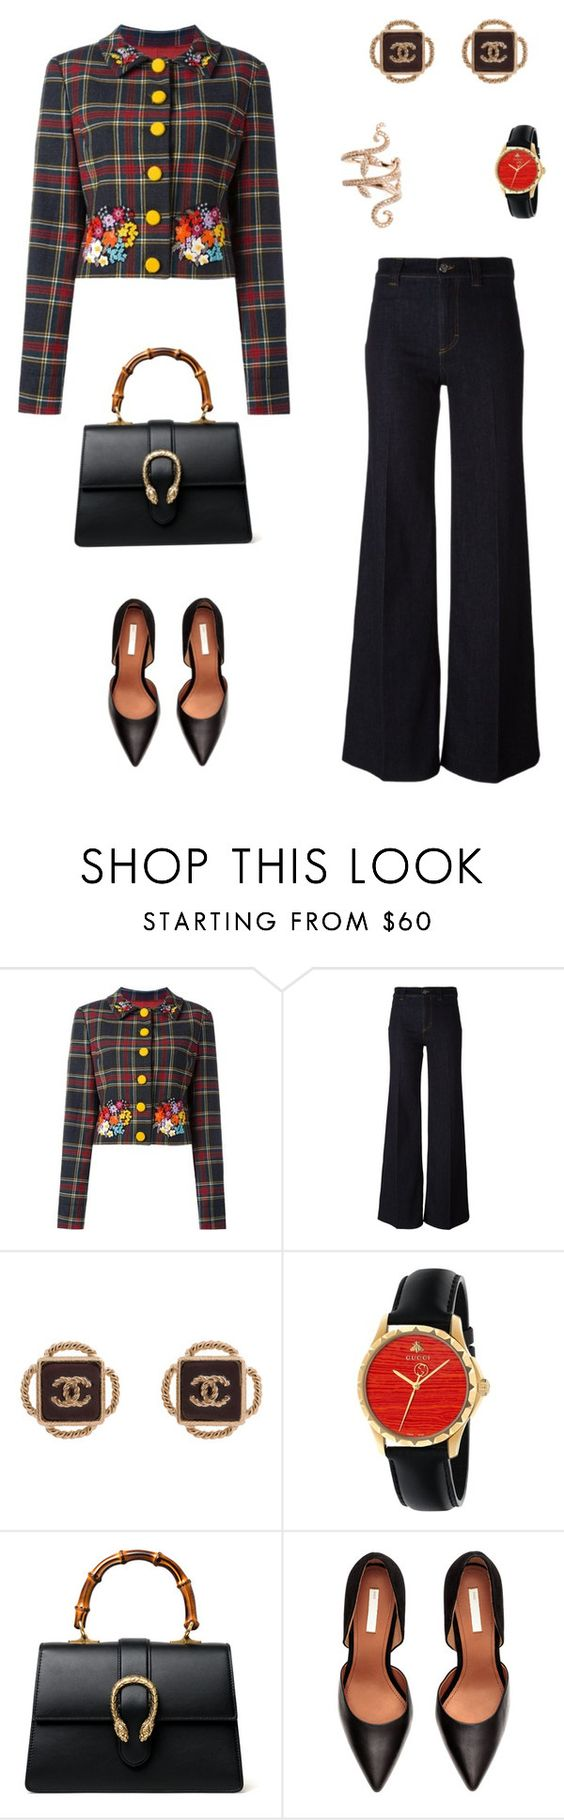 """Untitled #2173"" by bushphawan ❤ liked on Polyvore featuring Moschino, Paul Smith, Chanel, Gucci and Elise Dray"